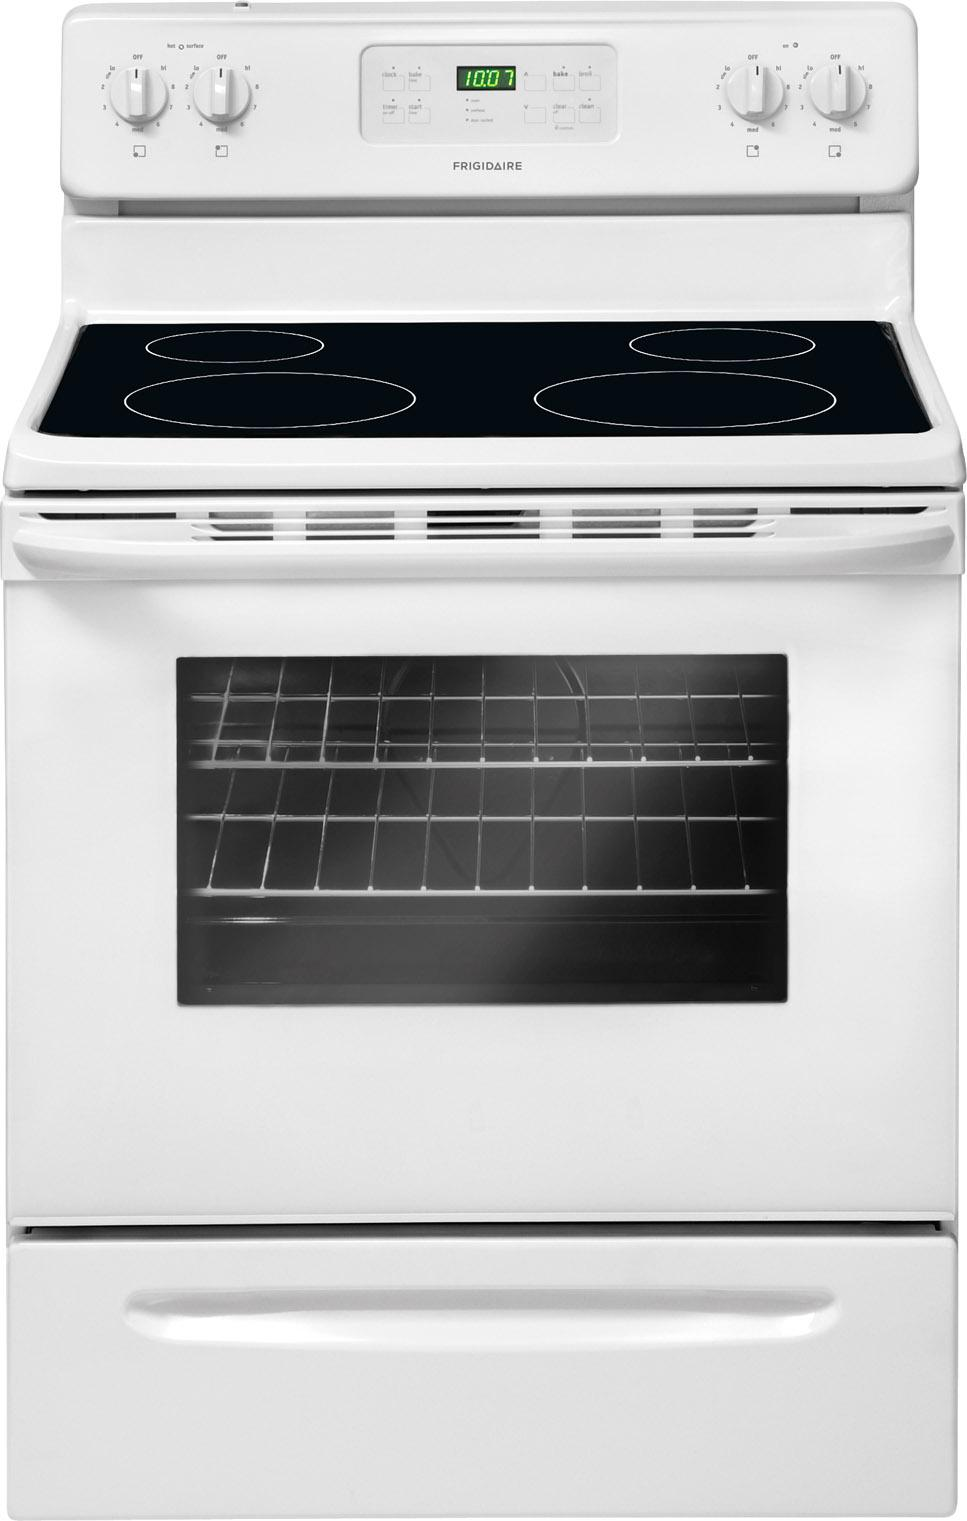 "Frigidaire Electric Range 30"" Freestanding Electric Range - Item Number: FFEF3017ZW"